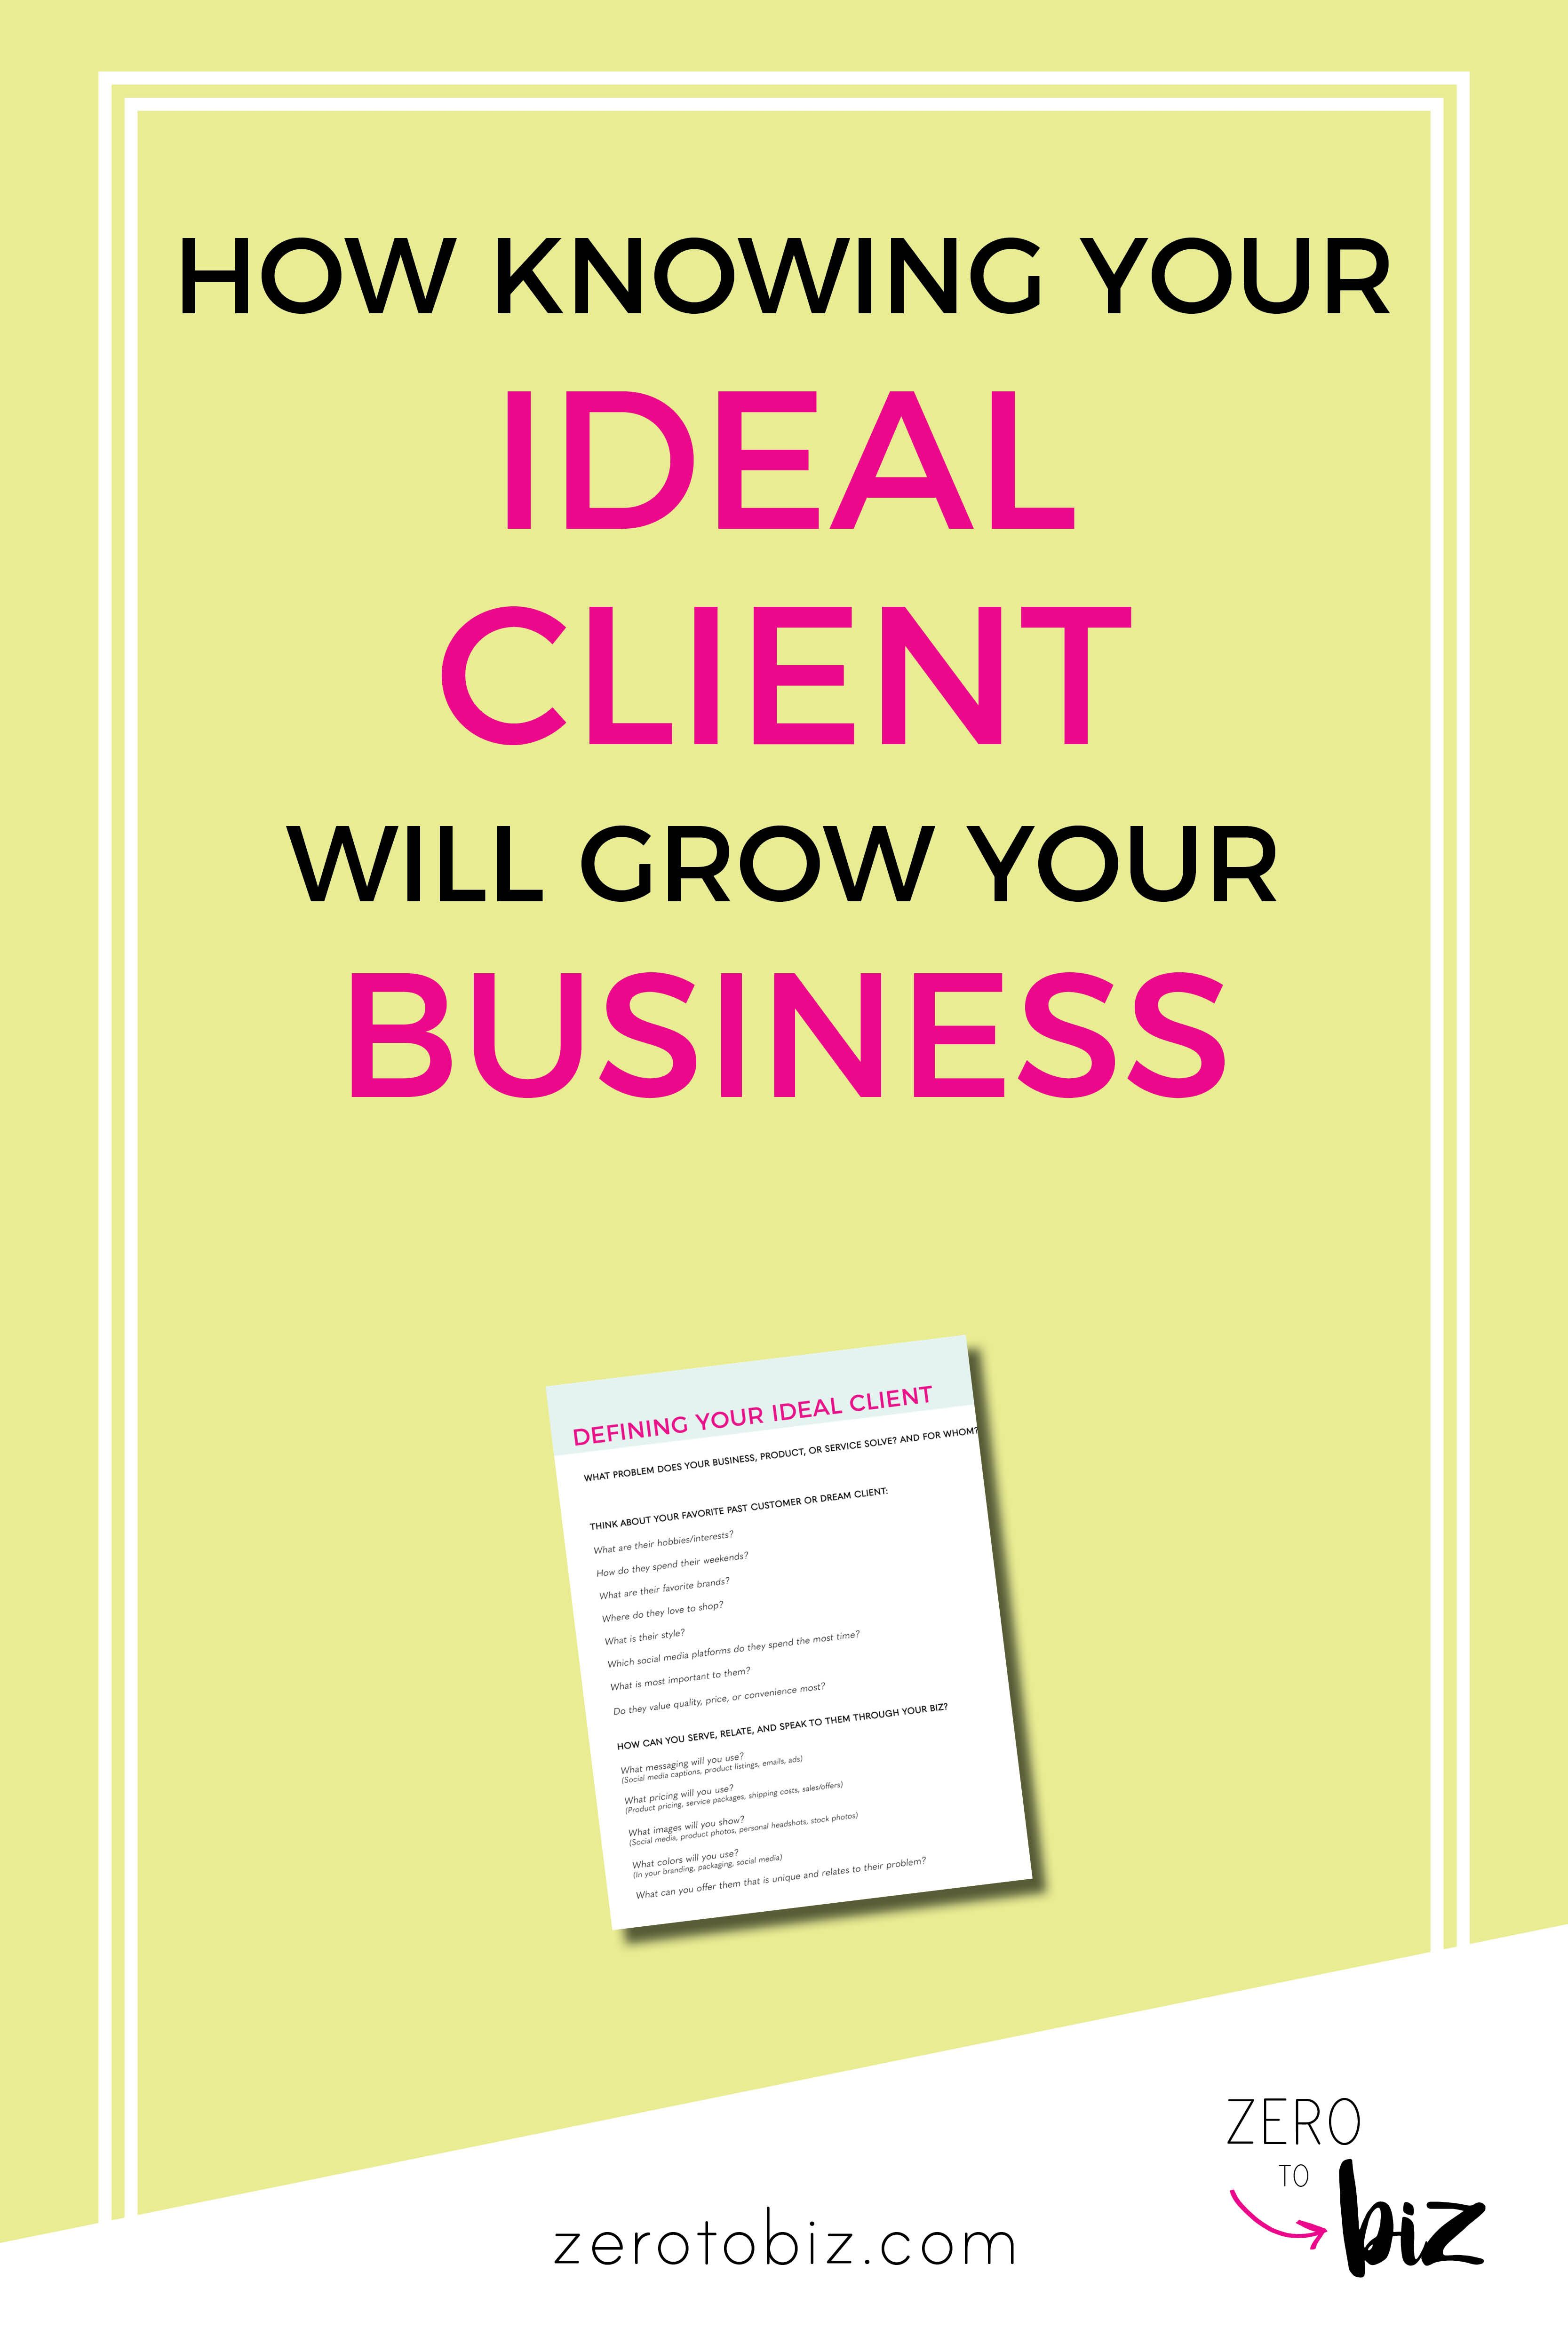 How Knowing Your Ideal Client Will Grow Your Business